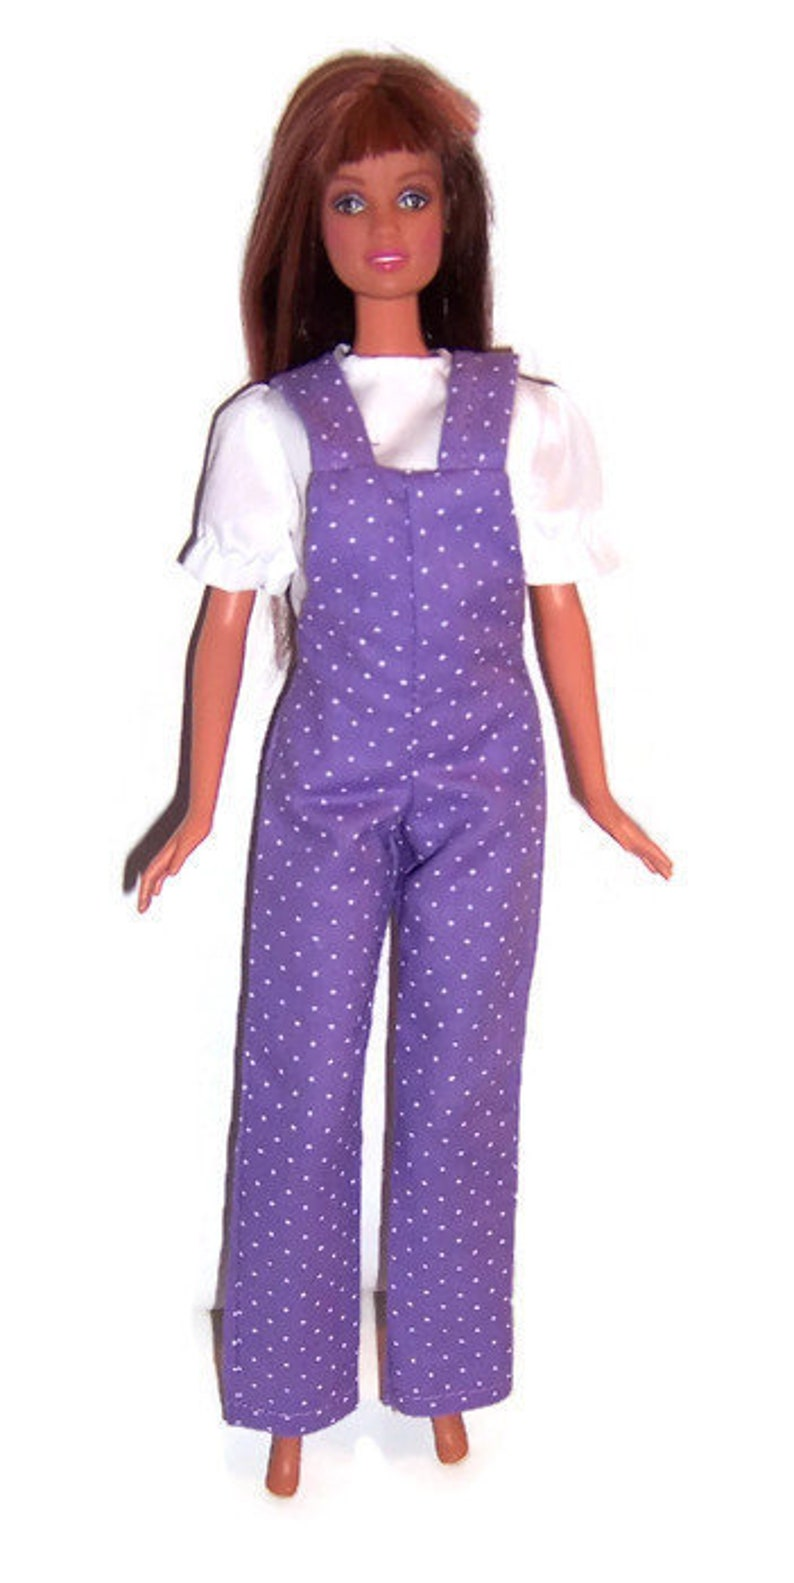 3db6523c92 Lavender Polka Dot Overall & White Blouse-will fit Barbie | Etsy